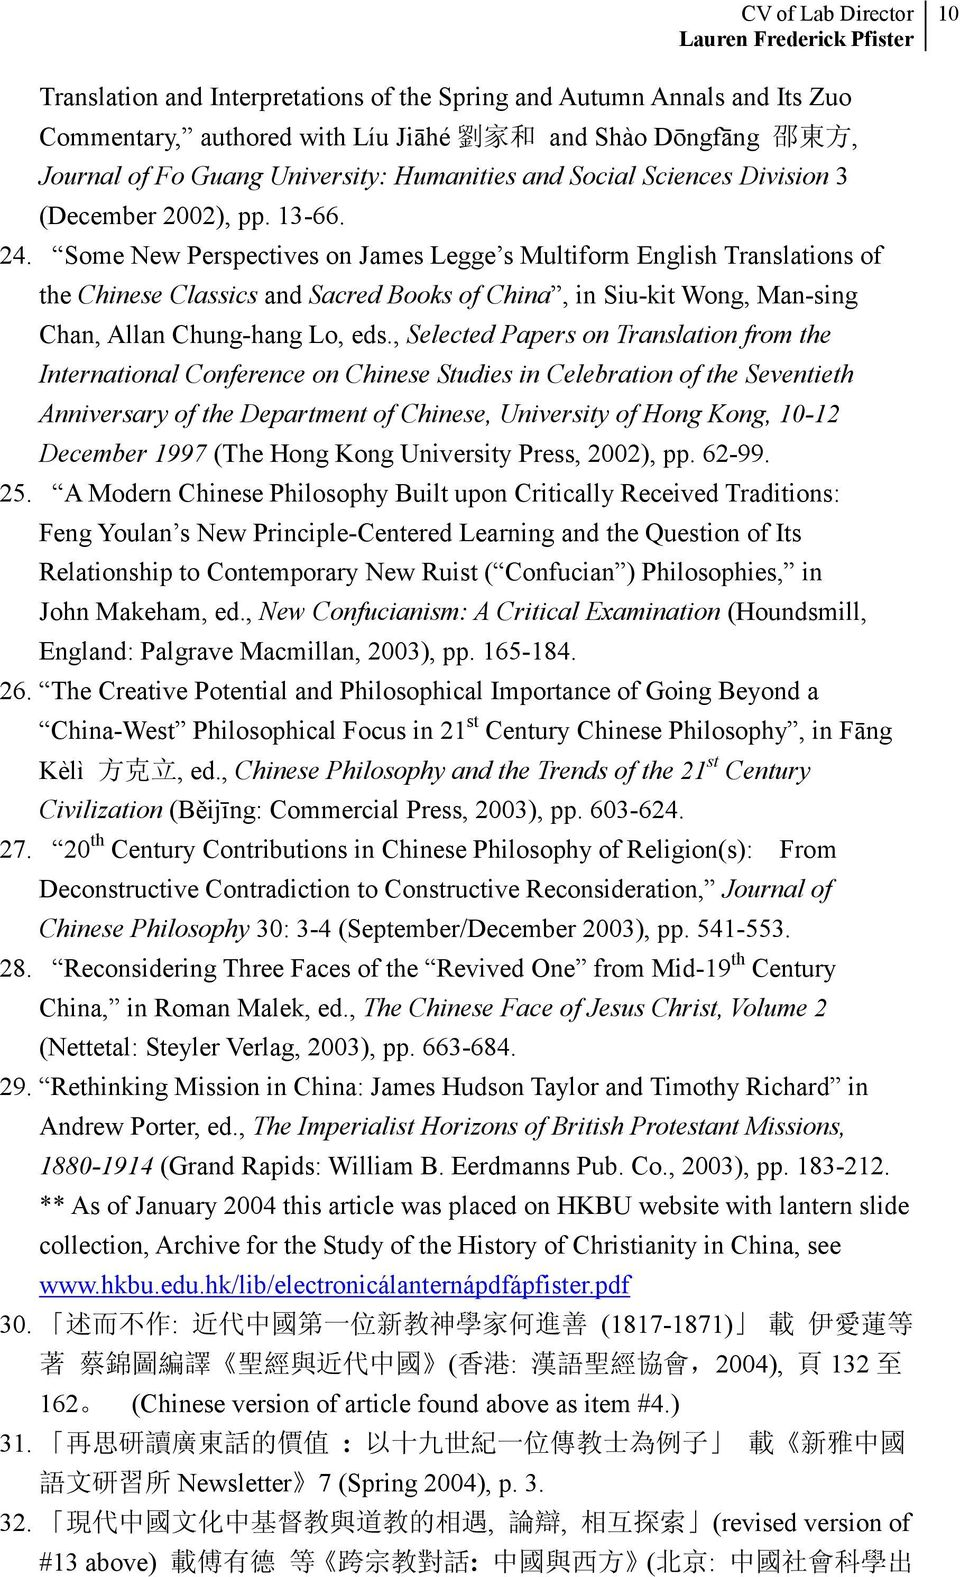 Some New Perspectives on James Legge s Multiform English Translations of the Chinese Classics and Sacred Books of China, in Siu-kit Wong, Man-sing Chan, Allan Chung-hang Lo, eds.